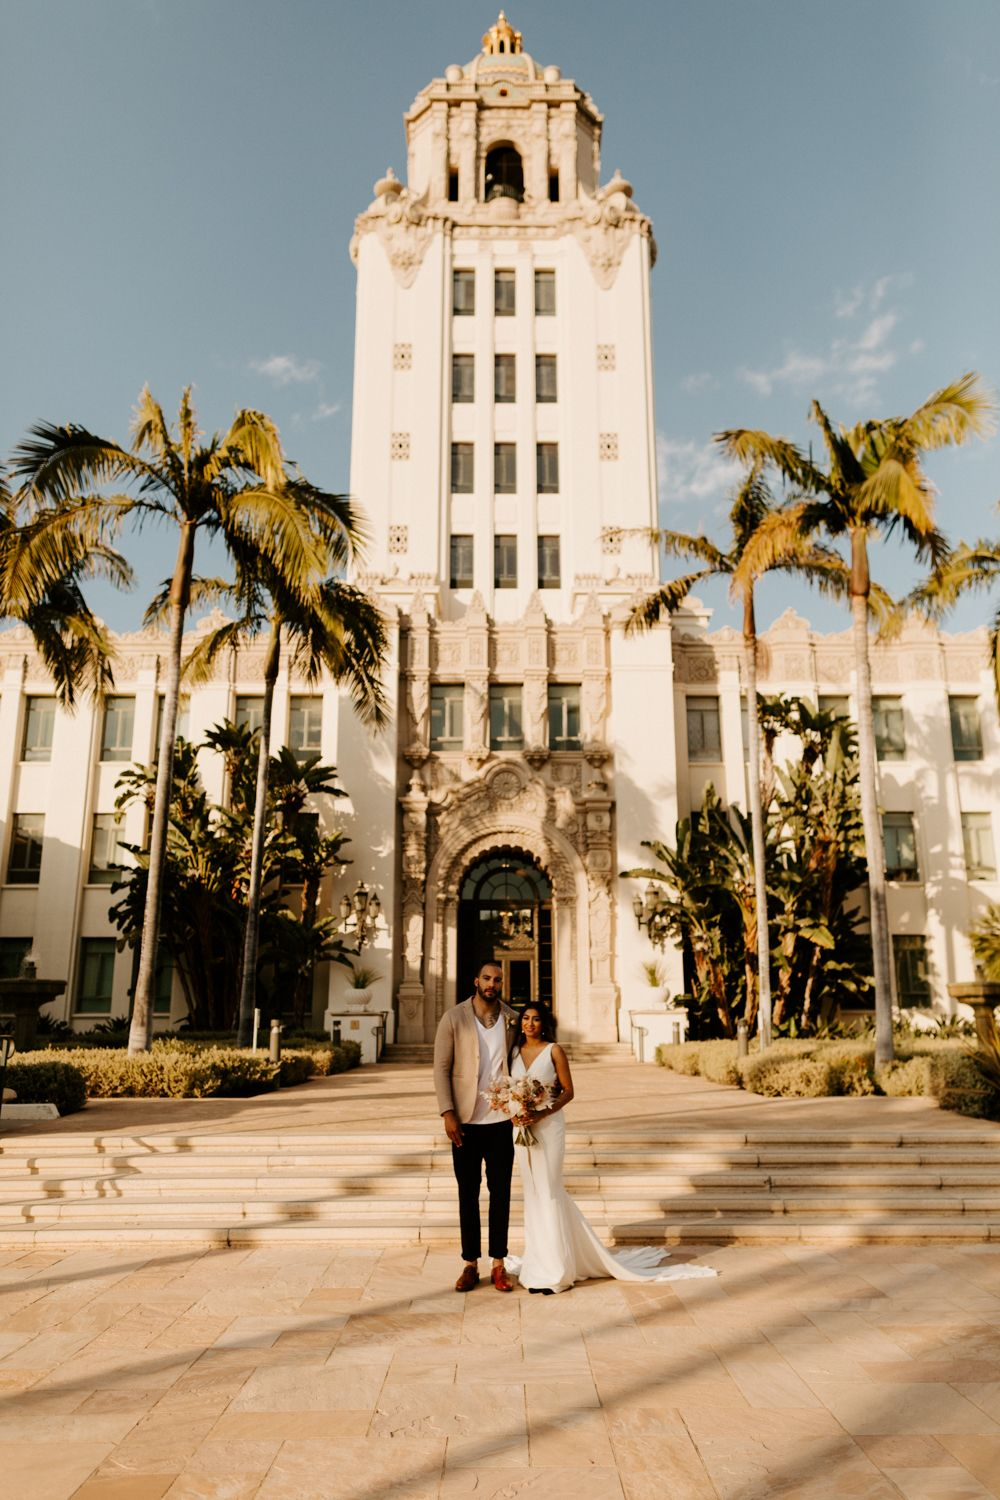 Beverly Hills Courthouse Elopement Tida Svy Wedding Los Angeles Courthouse Wedding Photos Beverly Hills